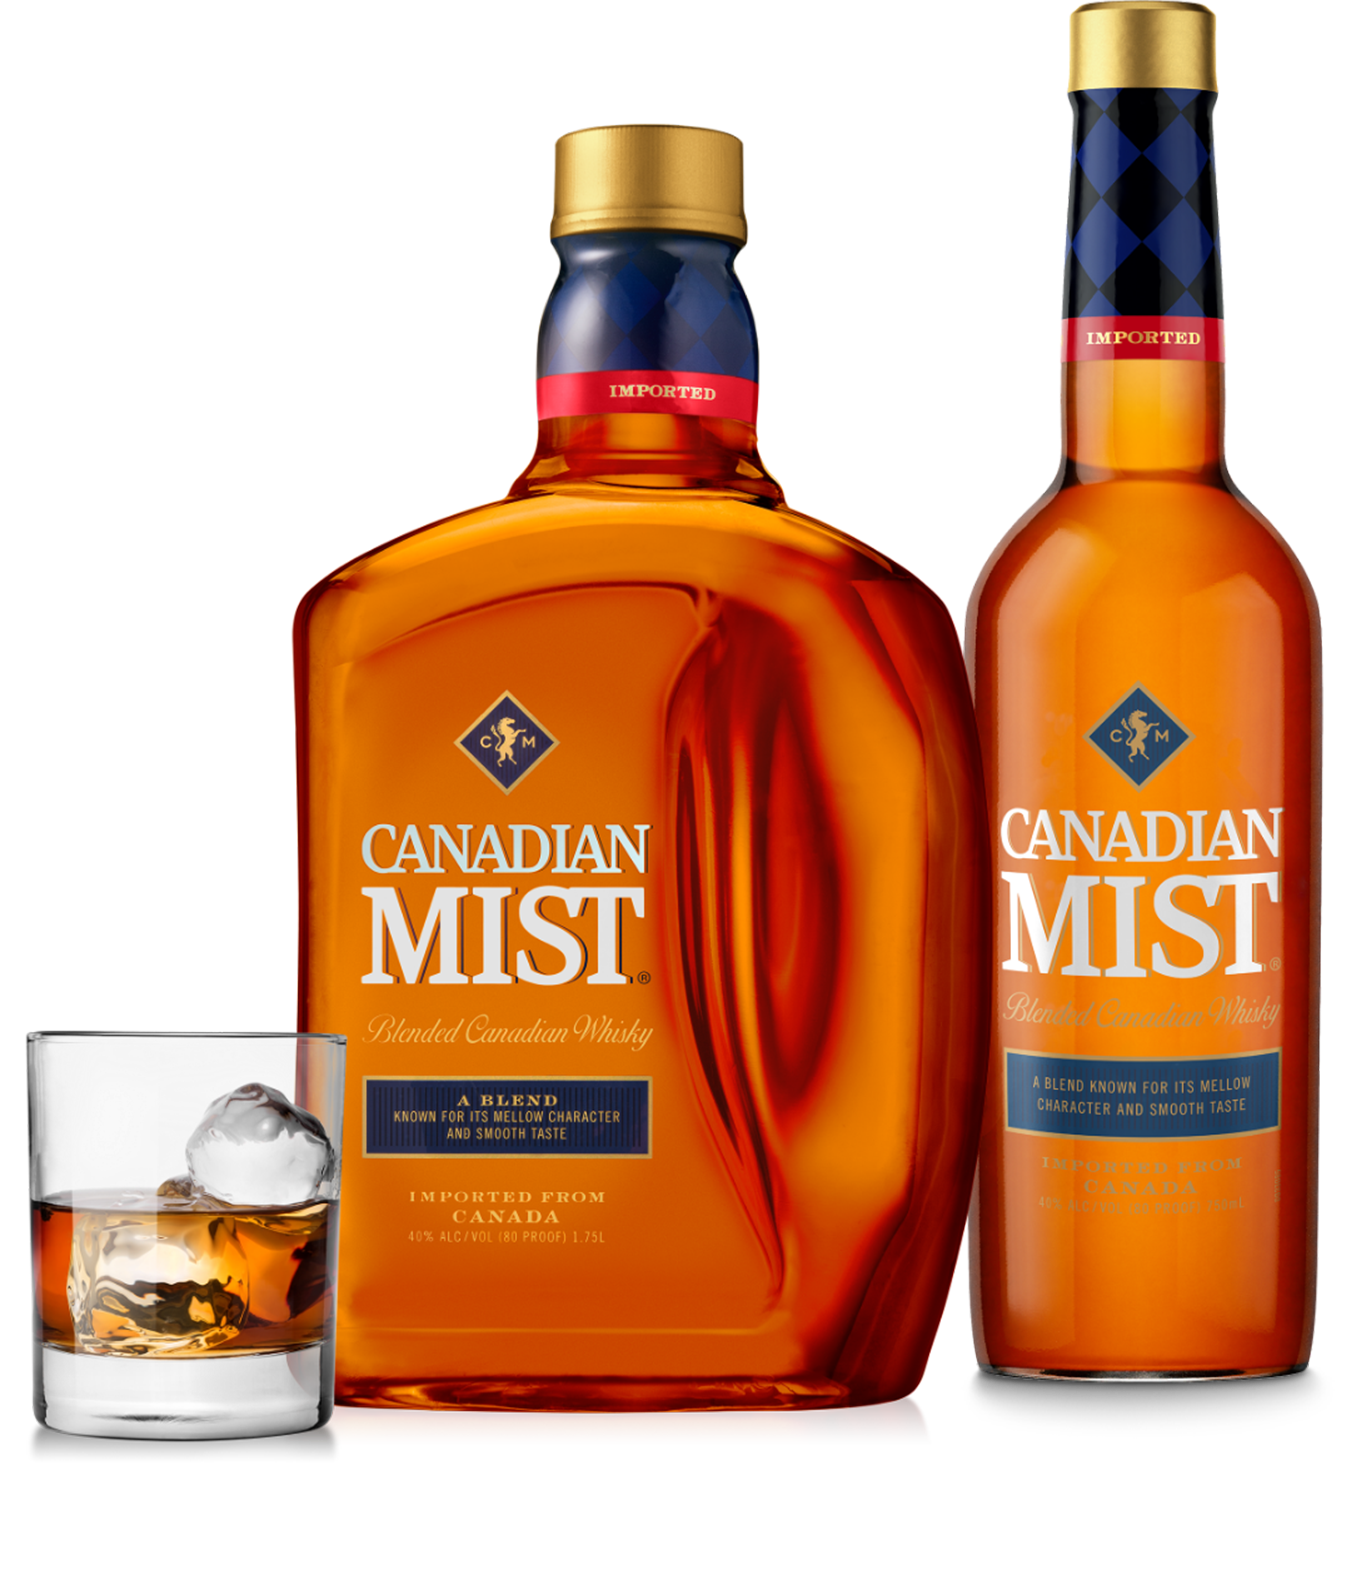 Two bottles of Canadian Mist whiskey alongside a serving glass